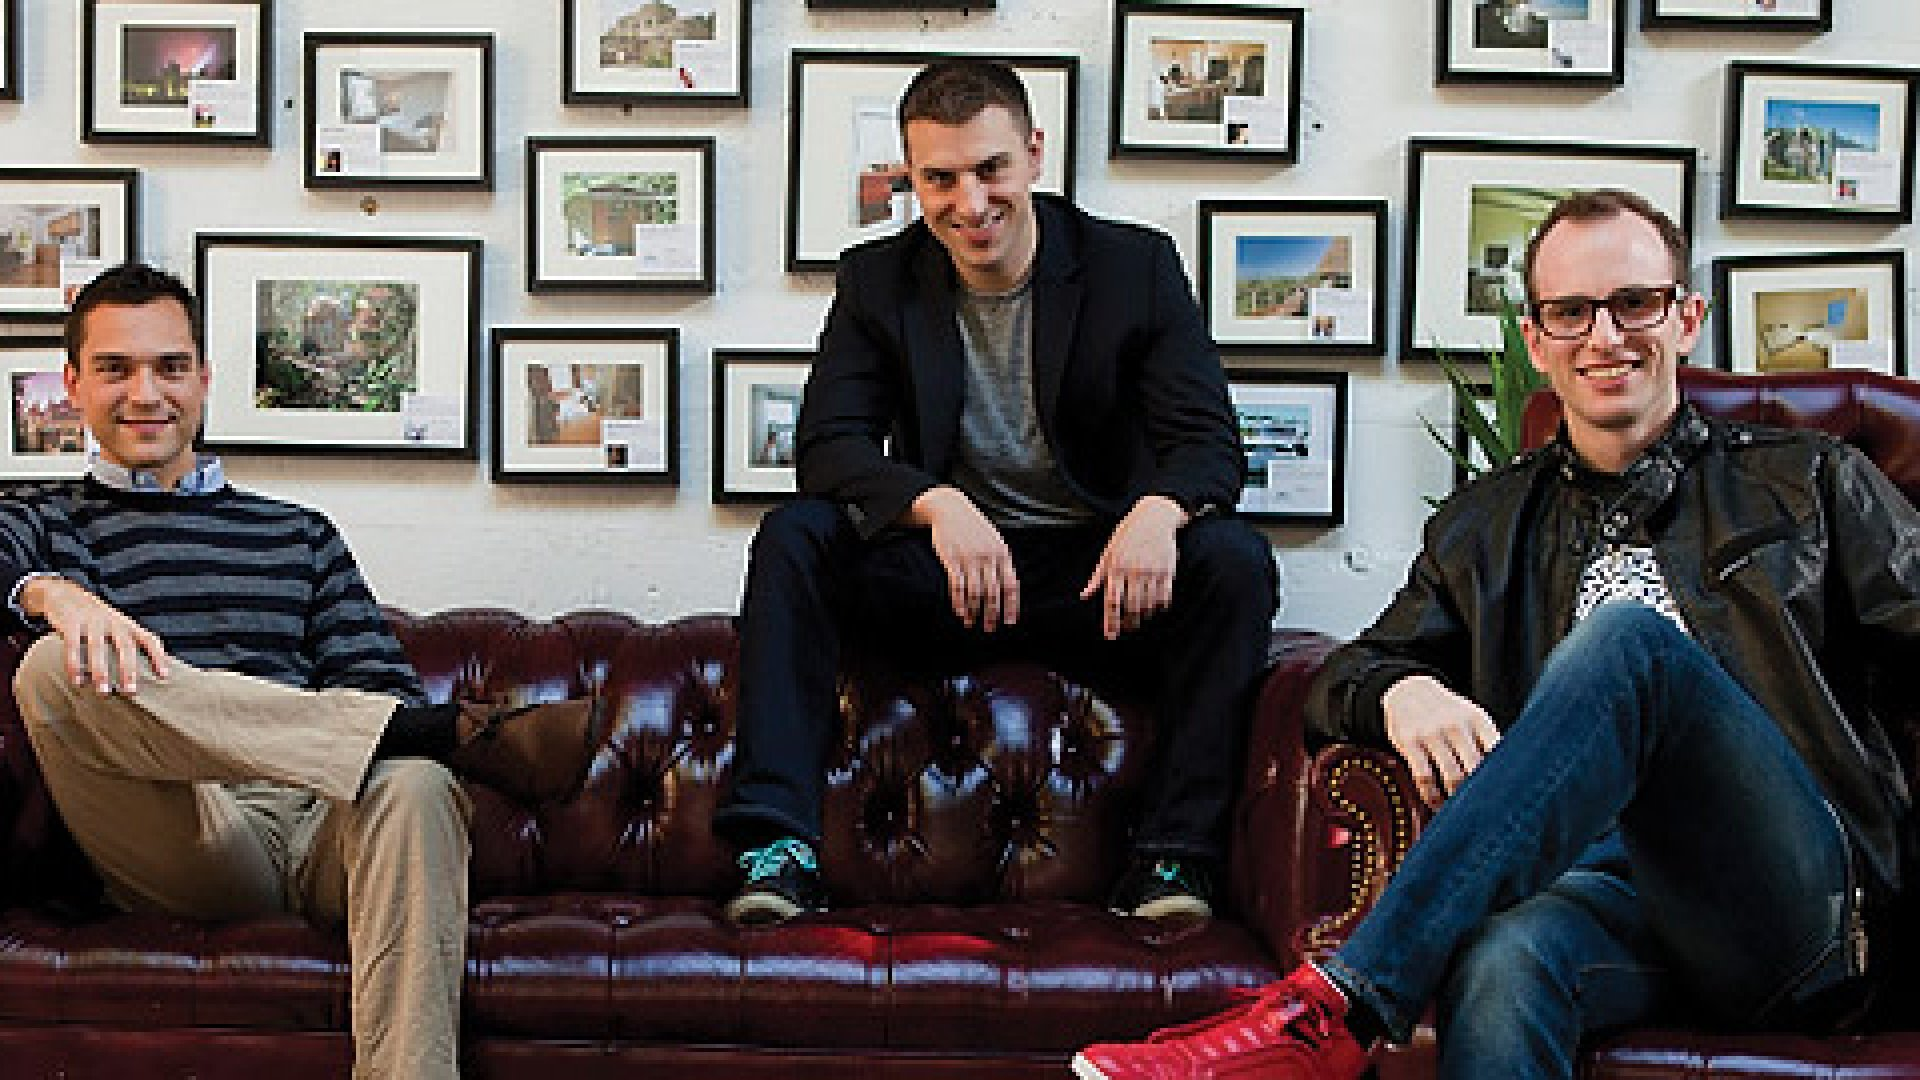 <strong>Attention Travel Junkies:</strong> Nathan Blecharczyk (far left), Brian Chesky (middle), and Joe Gebbia's start-up Airbnb is hosting travelers in 30,000 cities in 192 countries around the world.